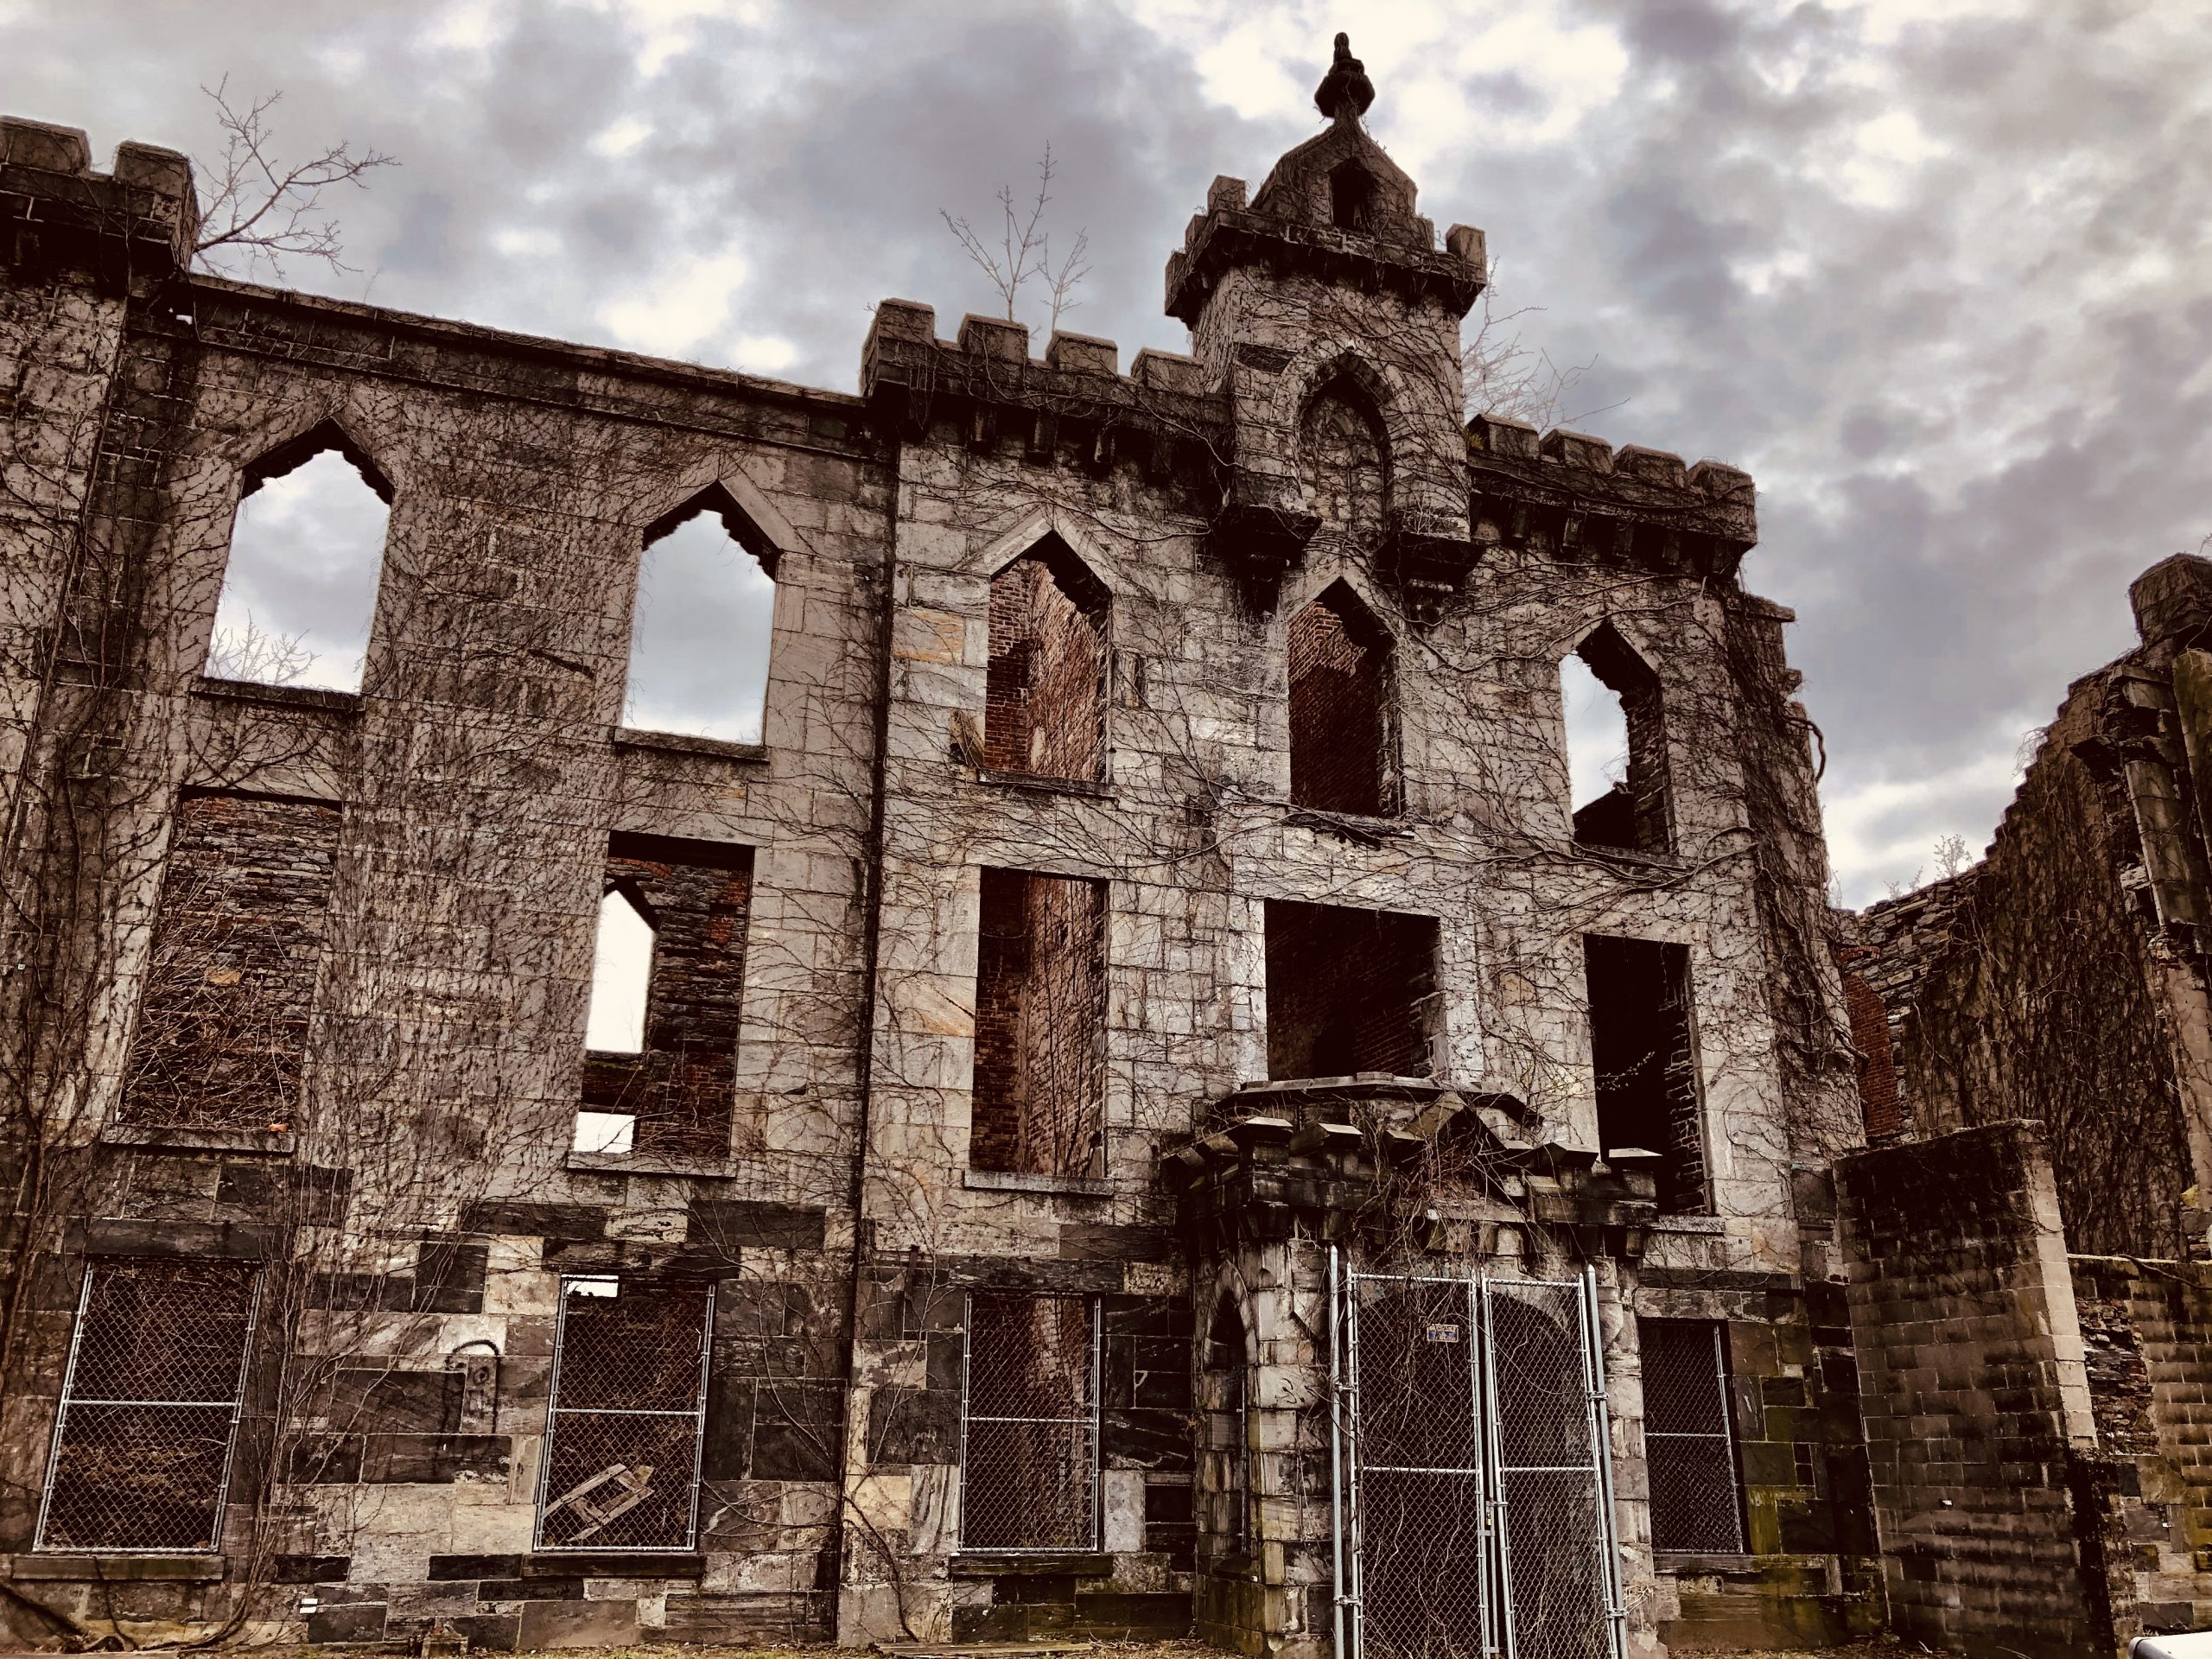 The Renwick Smallpox Hospital on Roosevelt Island in April 2019. No filters were used, just natural lighting of the sun